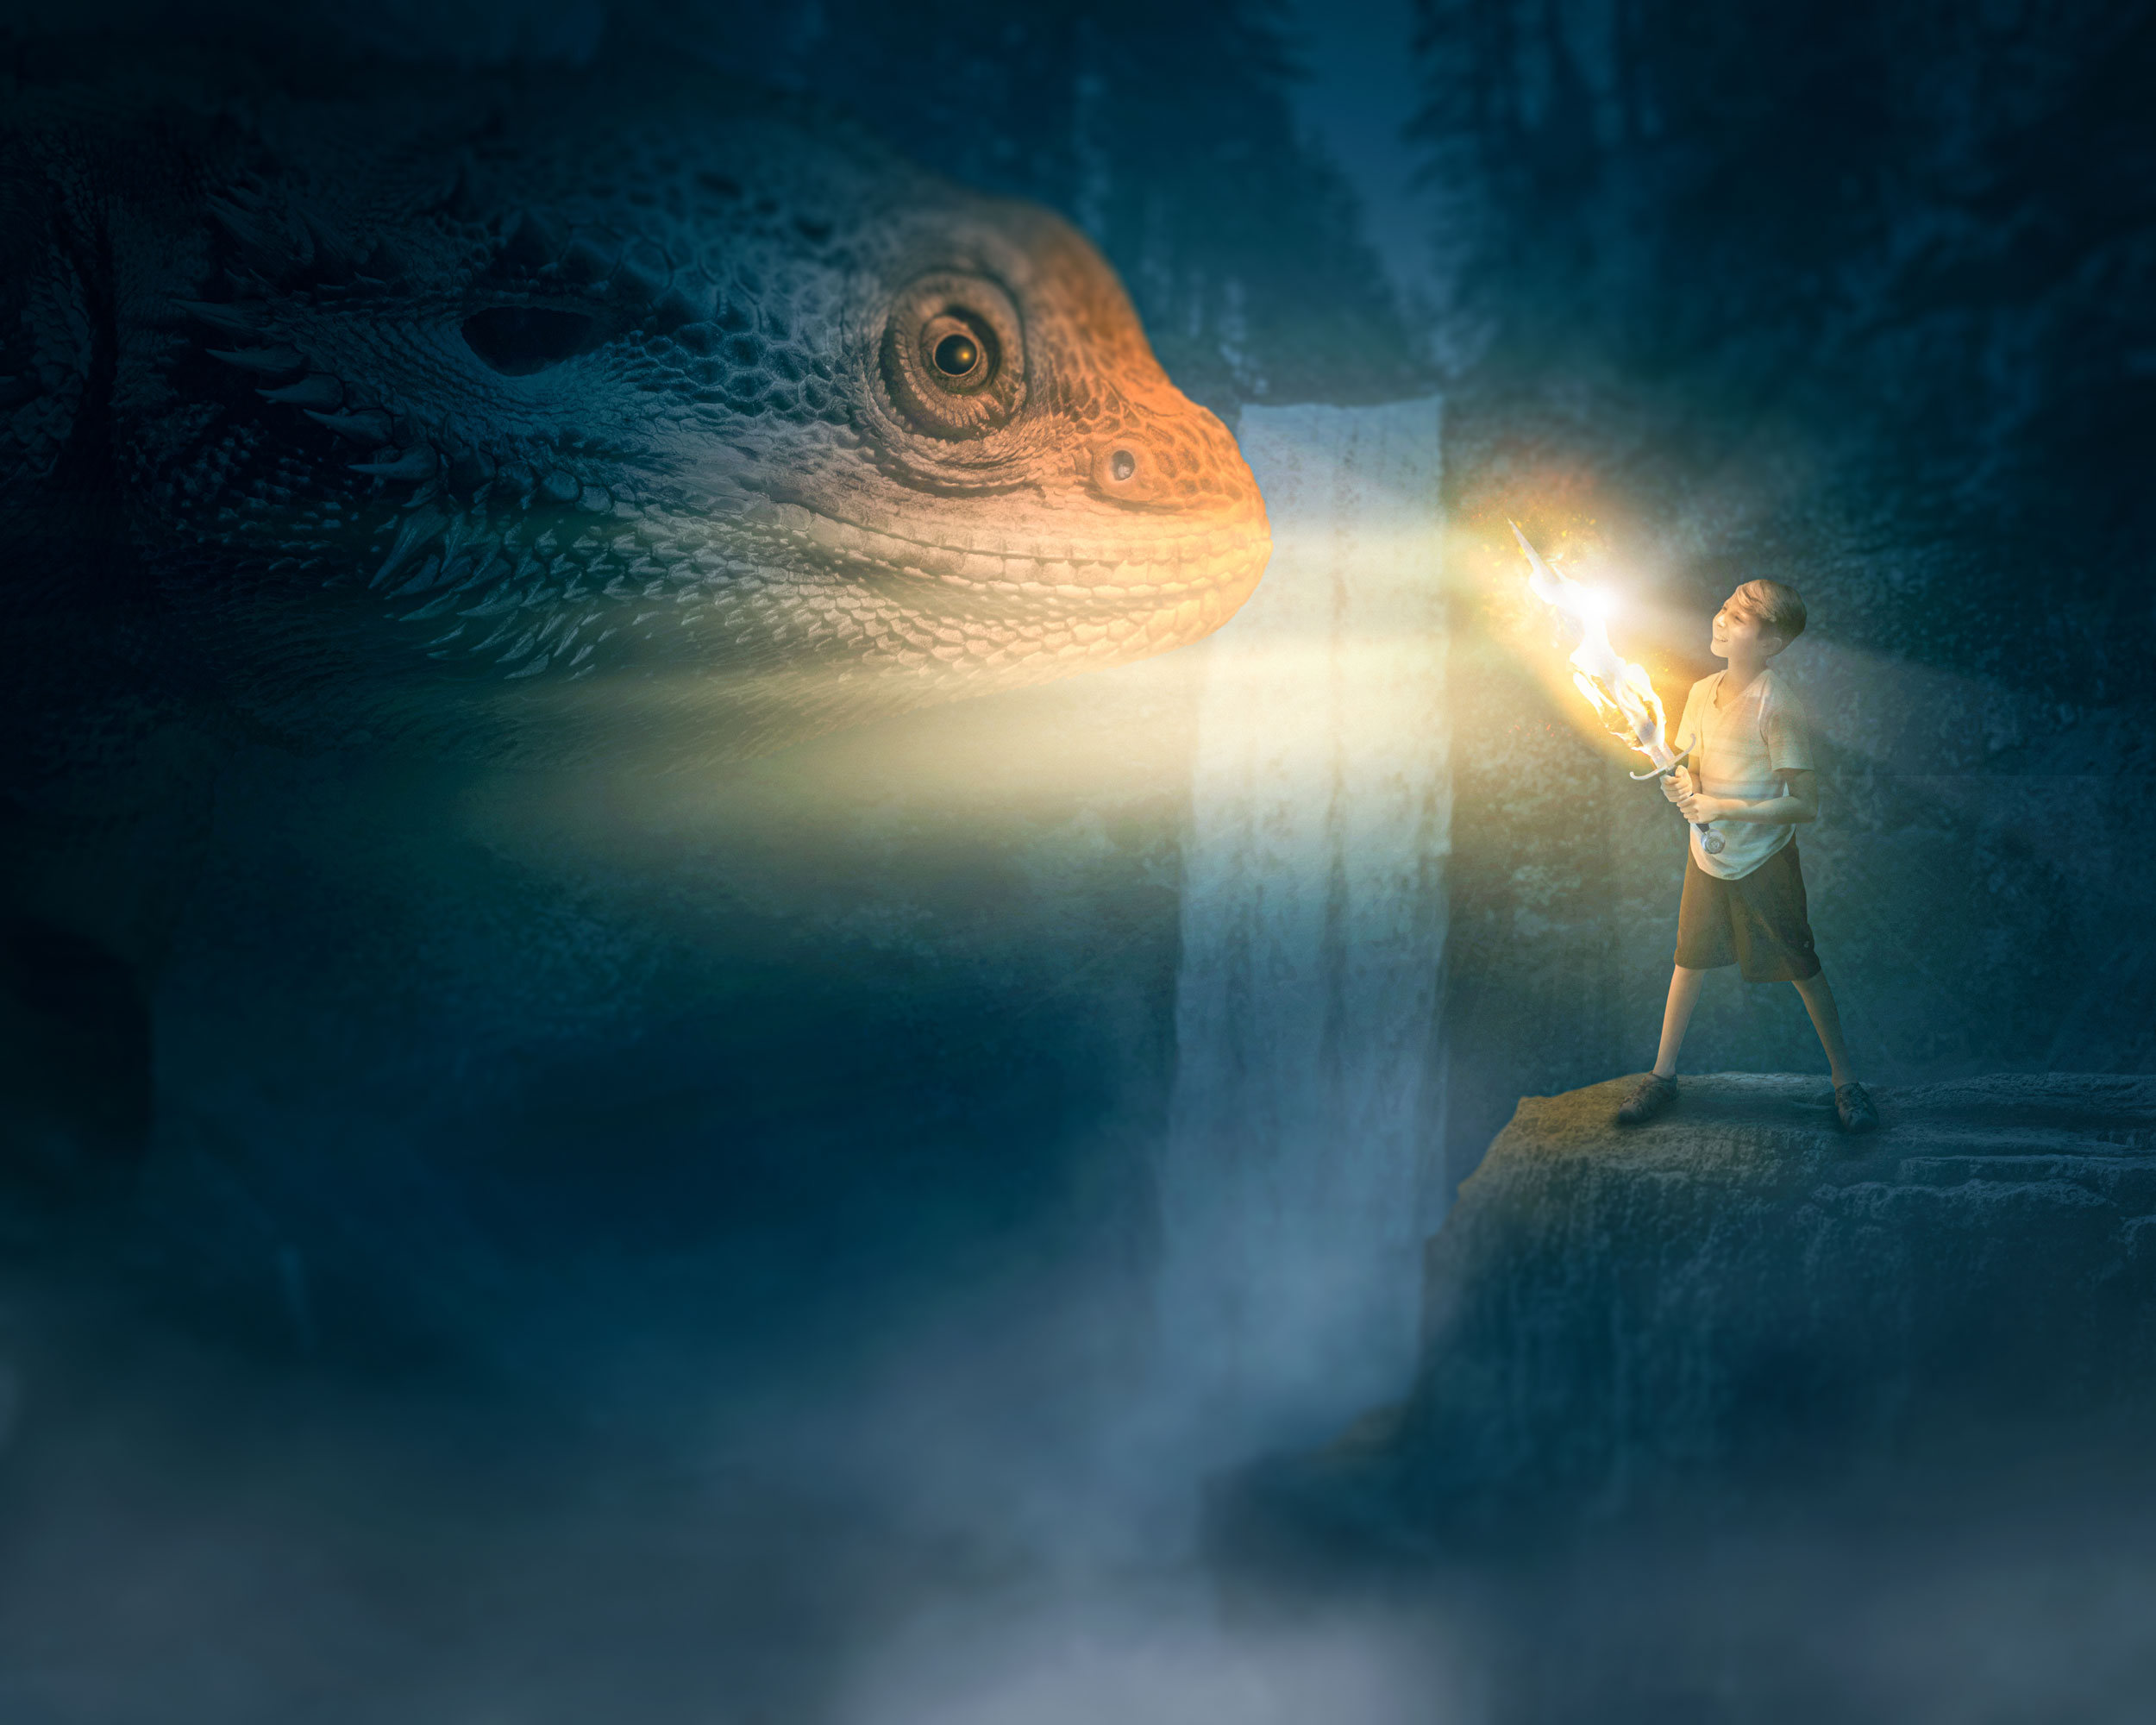 A young boy stands facing fears (symbolized by a dragon) in a dark, dingy place. The boy is holding a sword that is ablaze with fire.